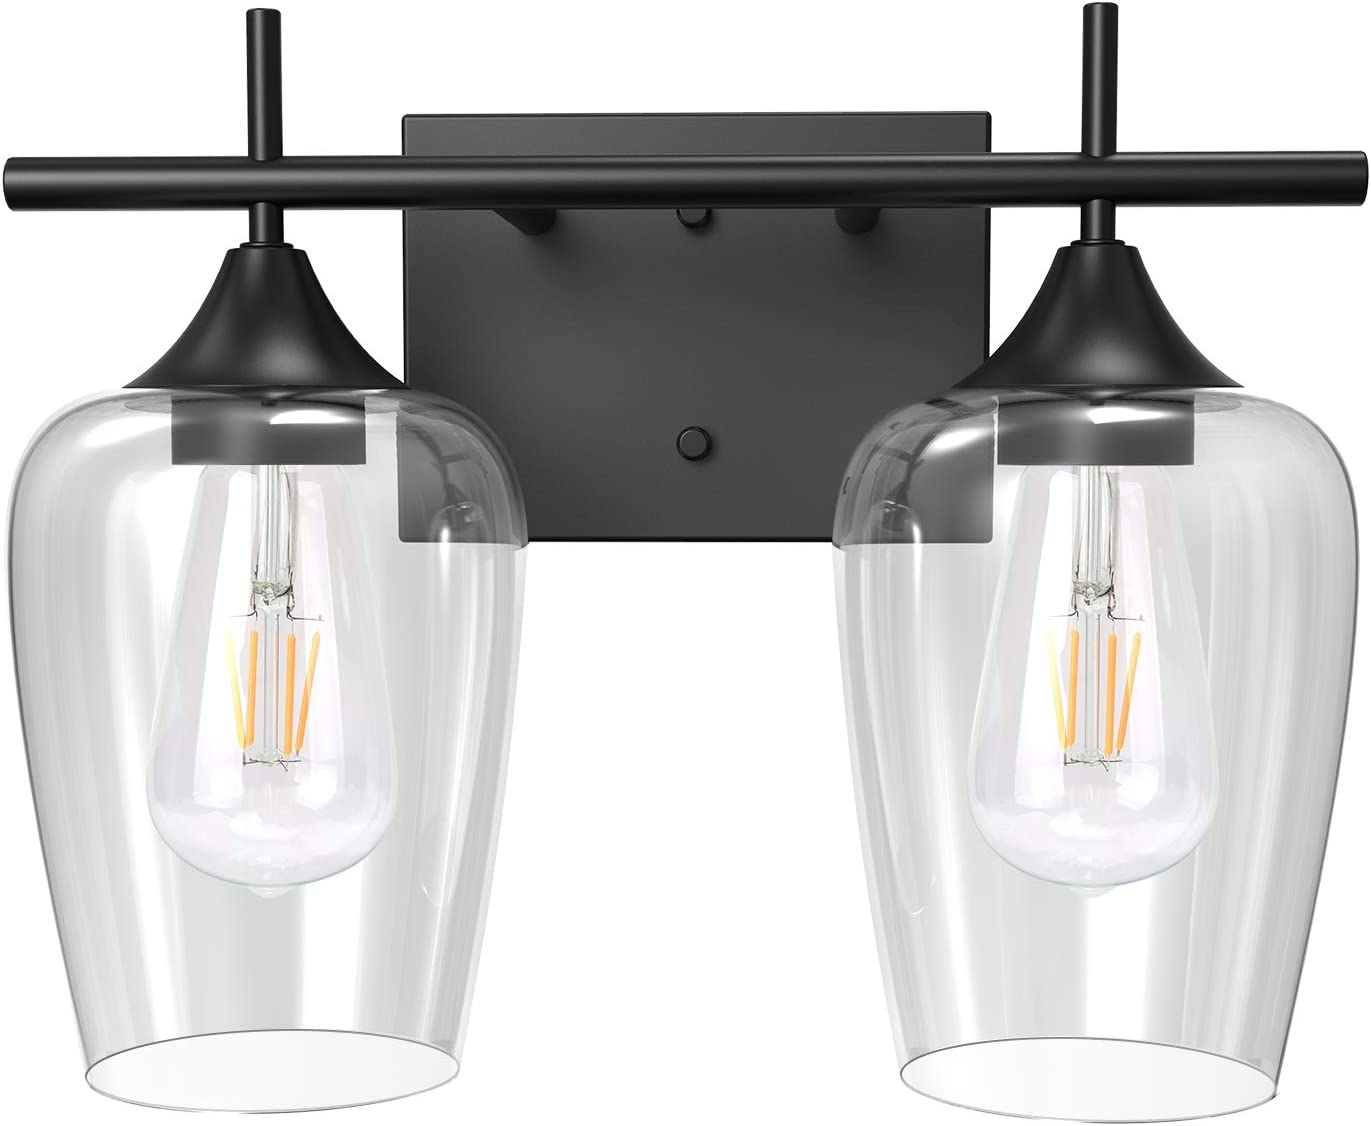 Lamps Light Fixtures Matte Black Finish Ul Listed 2 Light Bathroom Vanity Light Fixtures Jackyled Indoor Wall Mount Wall Sconce Vanity Light For Bathroom Makeup Dressing Table Clear Glass Shade Tools Home